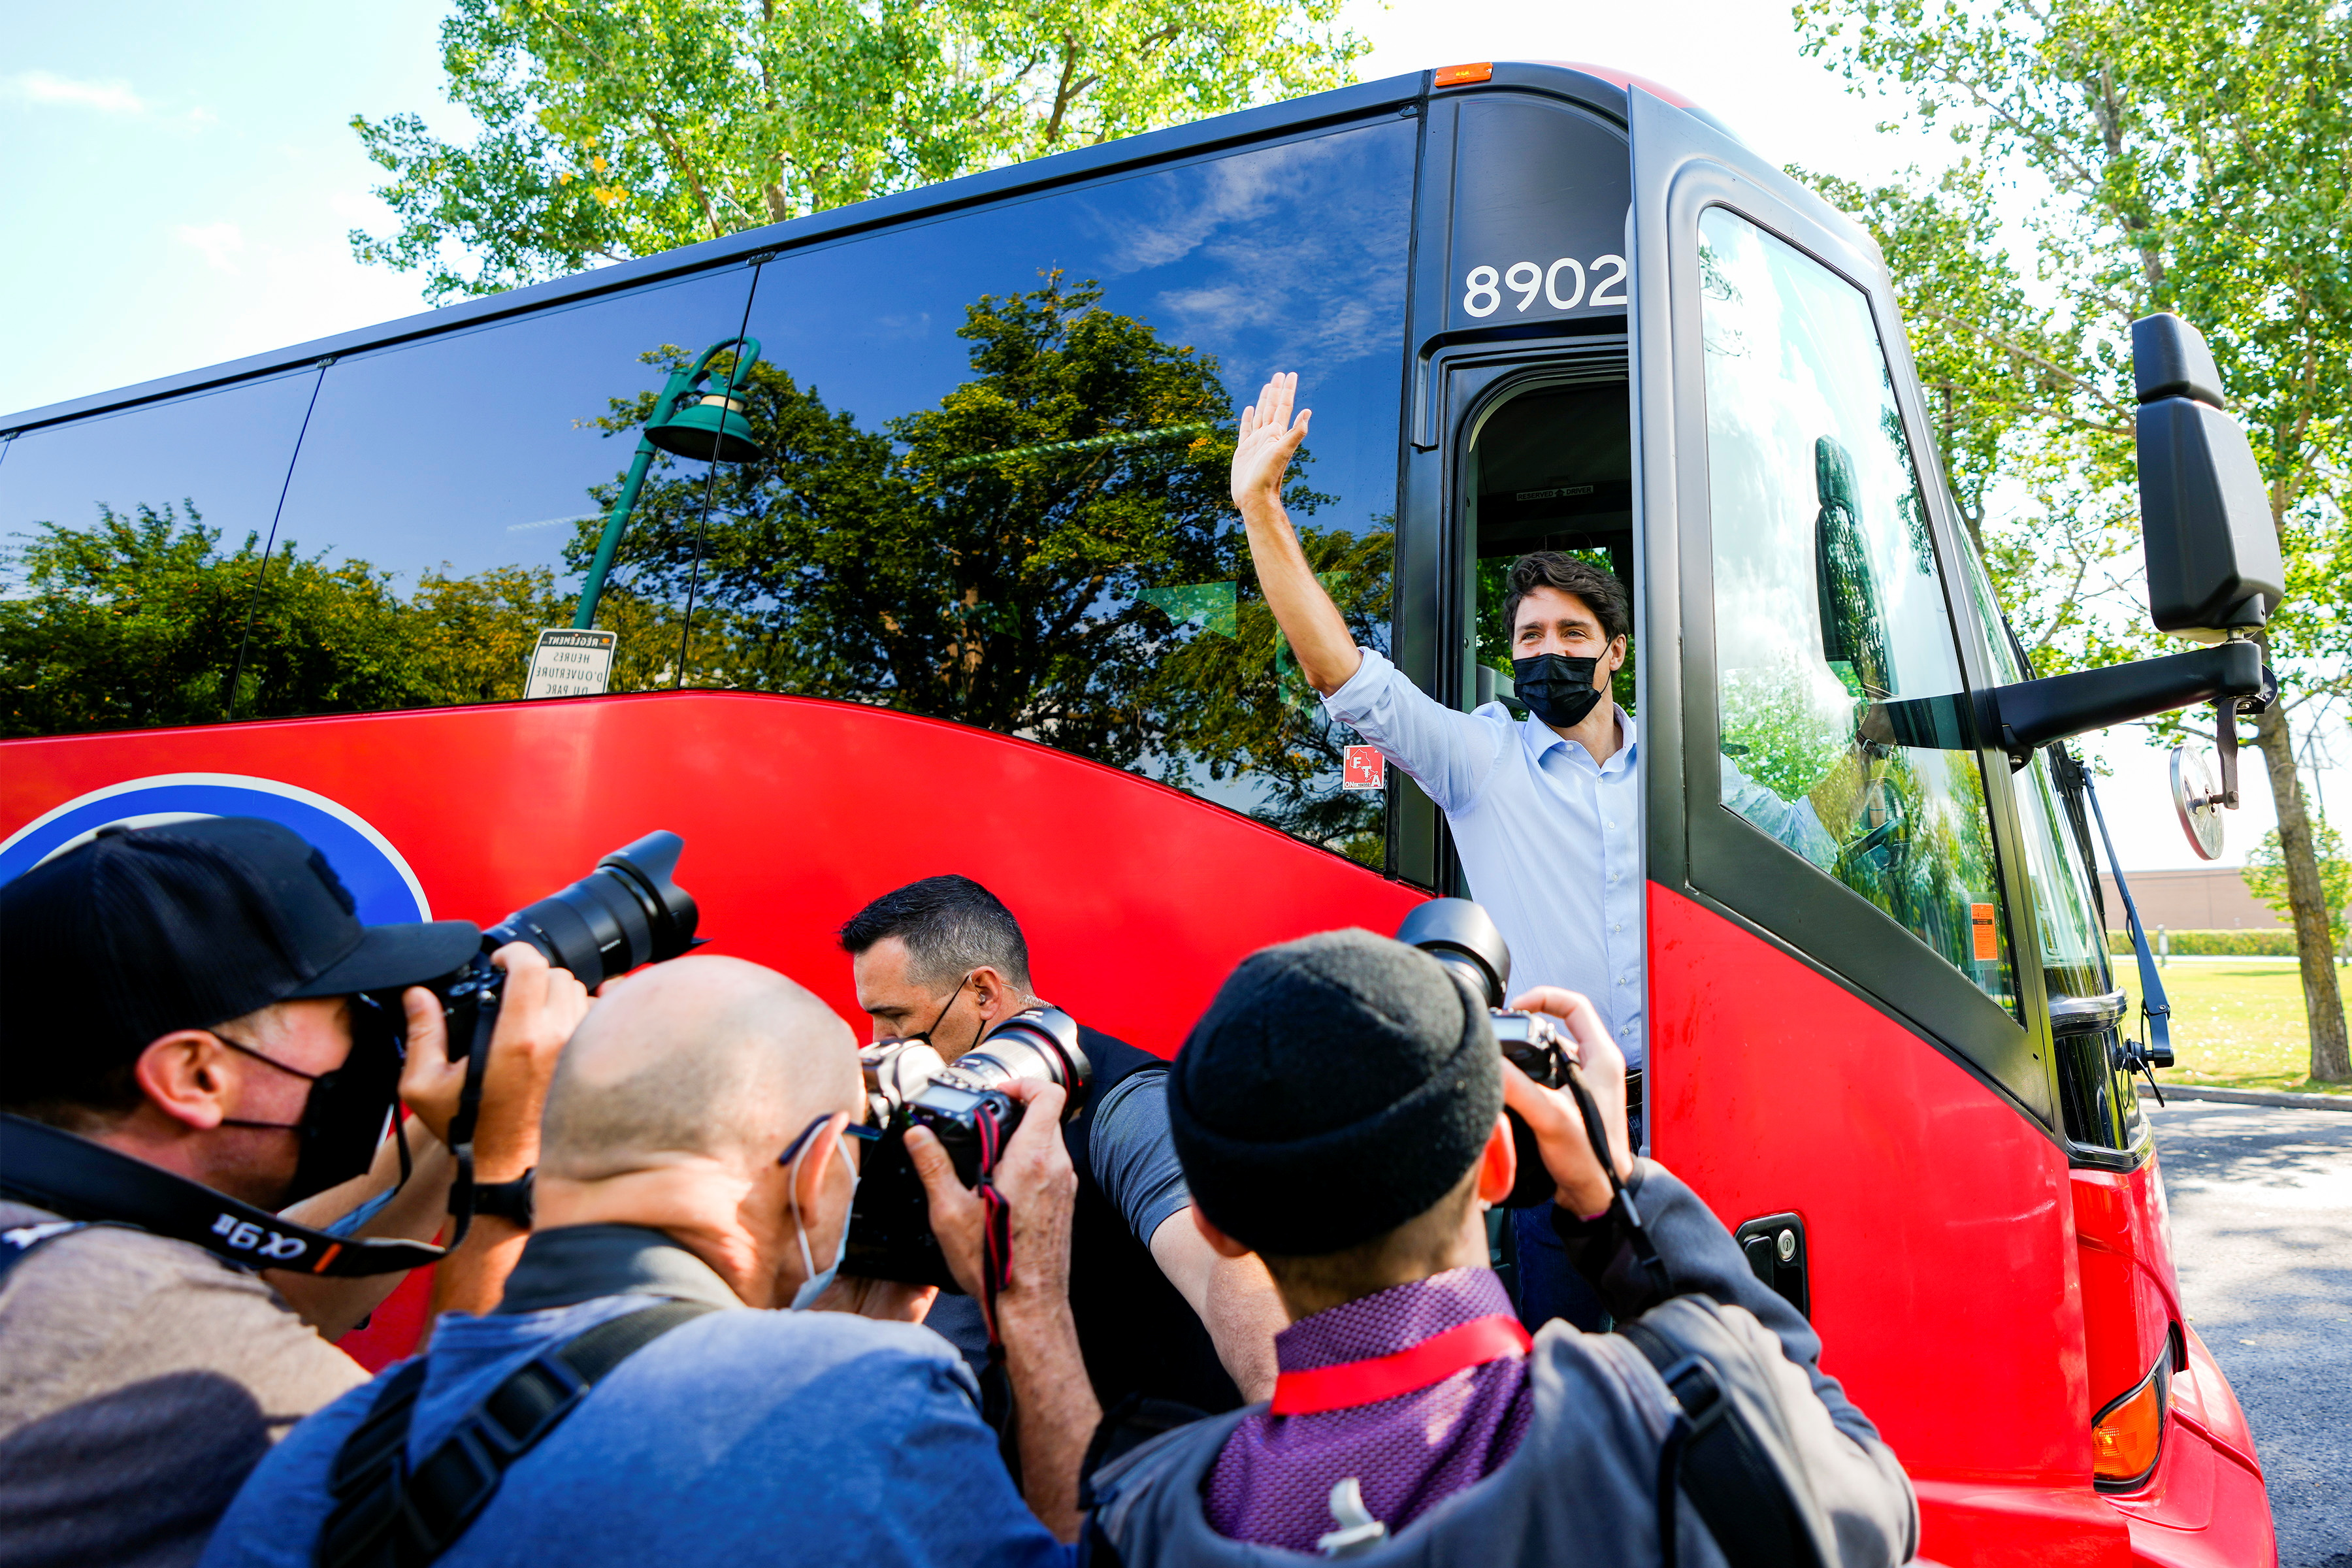 Canada's Prime Minister Justin Trudeau waves from his bus after his election campaign tour in Candiac, Quebec Canada, September 12, 2021. REUTERS/Carlos Osorio